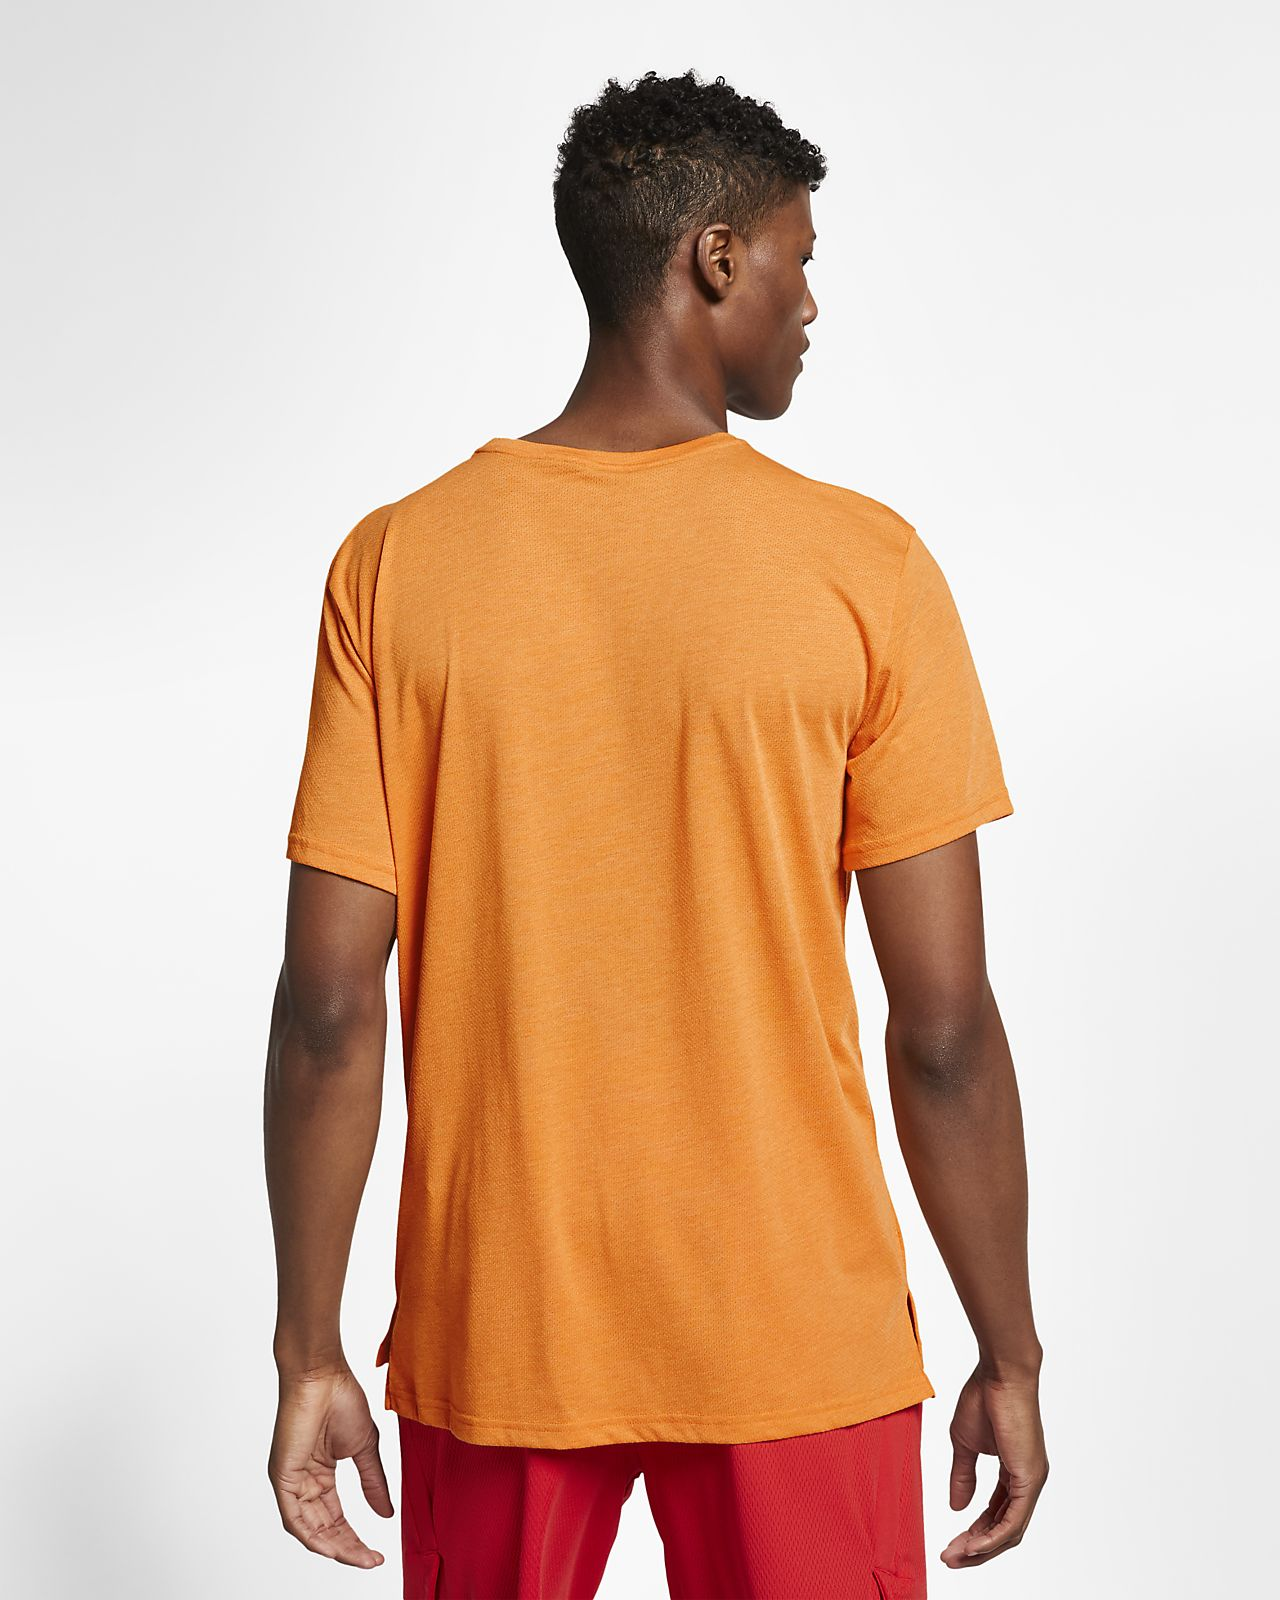 d6470f0595d96f Nike Breathe Men s Short-Sleeve Training Top. Nike.com